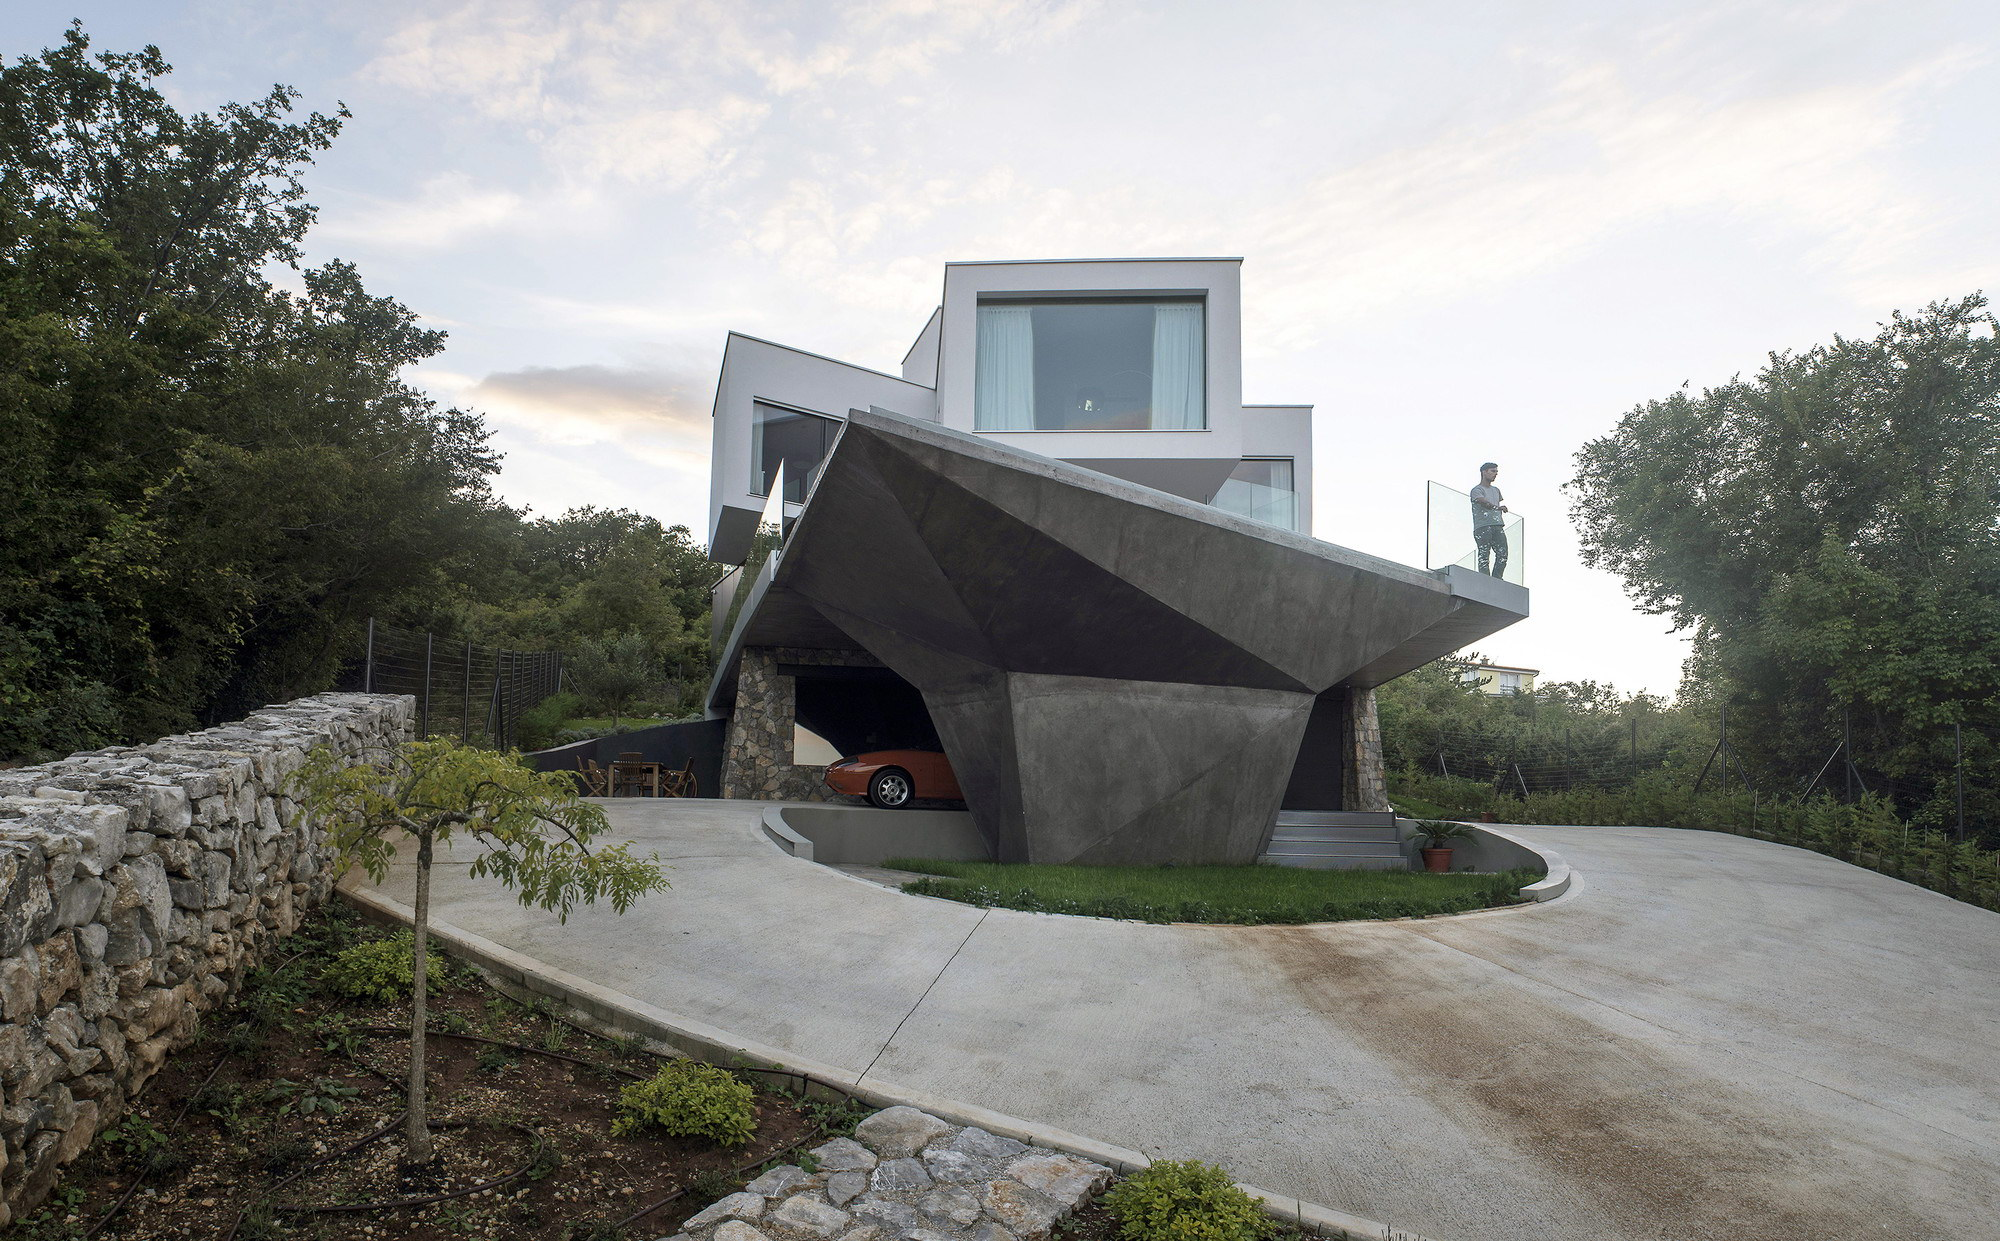 Gumno House by Turato Architects